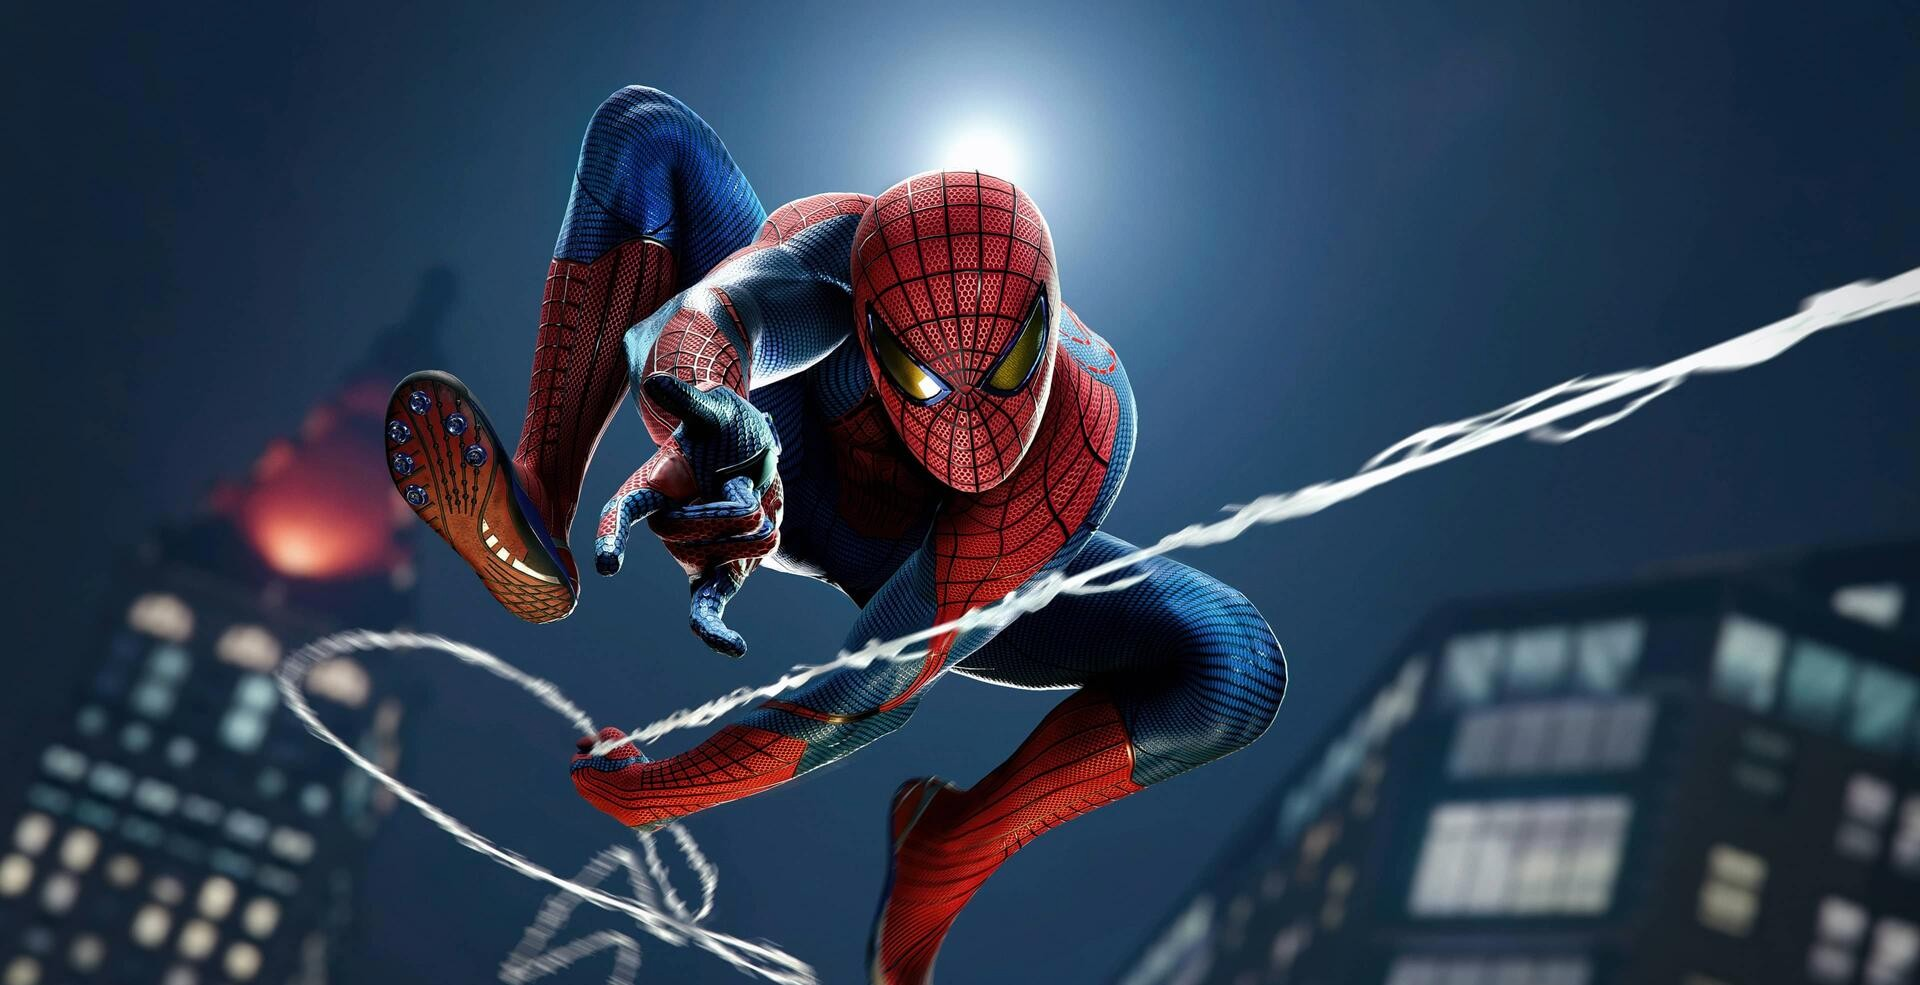 You can now buy Spider-Man Remastered separately on PS5 screenshot